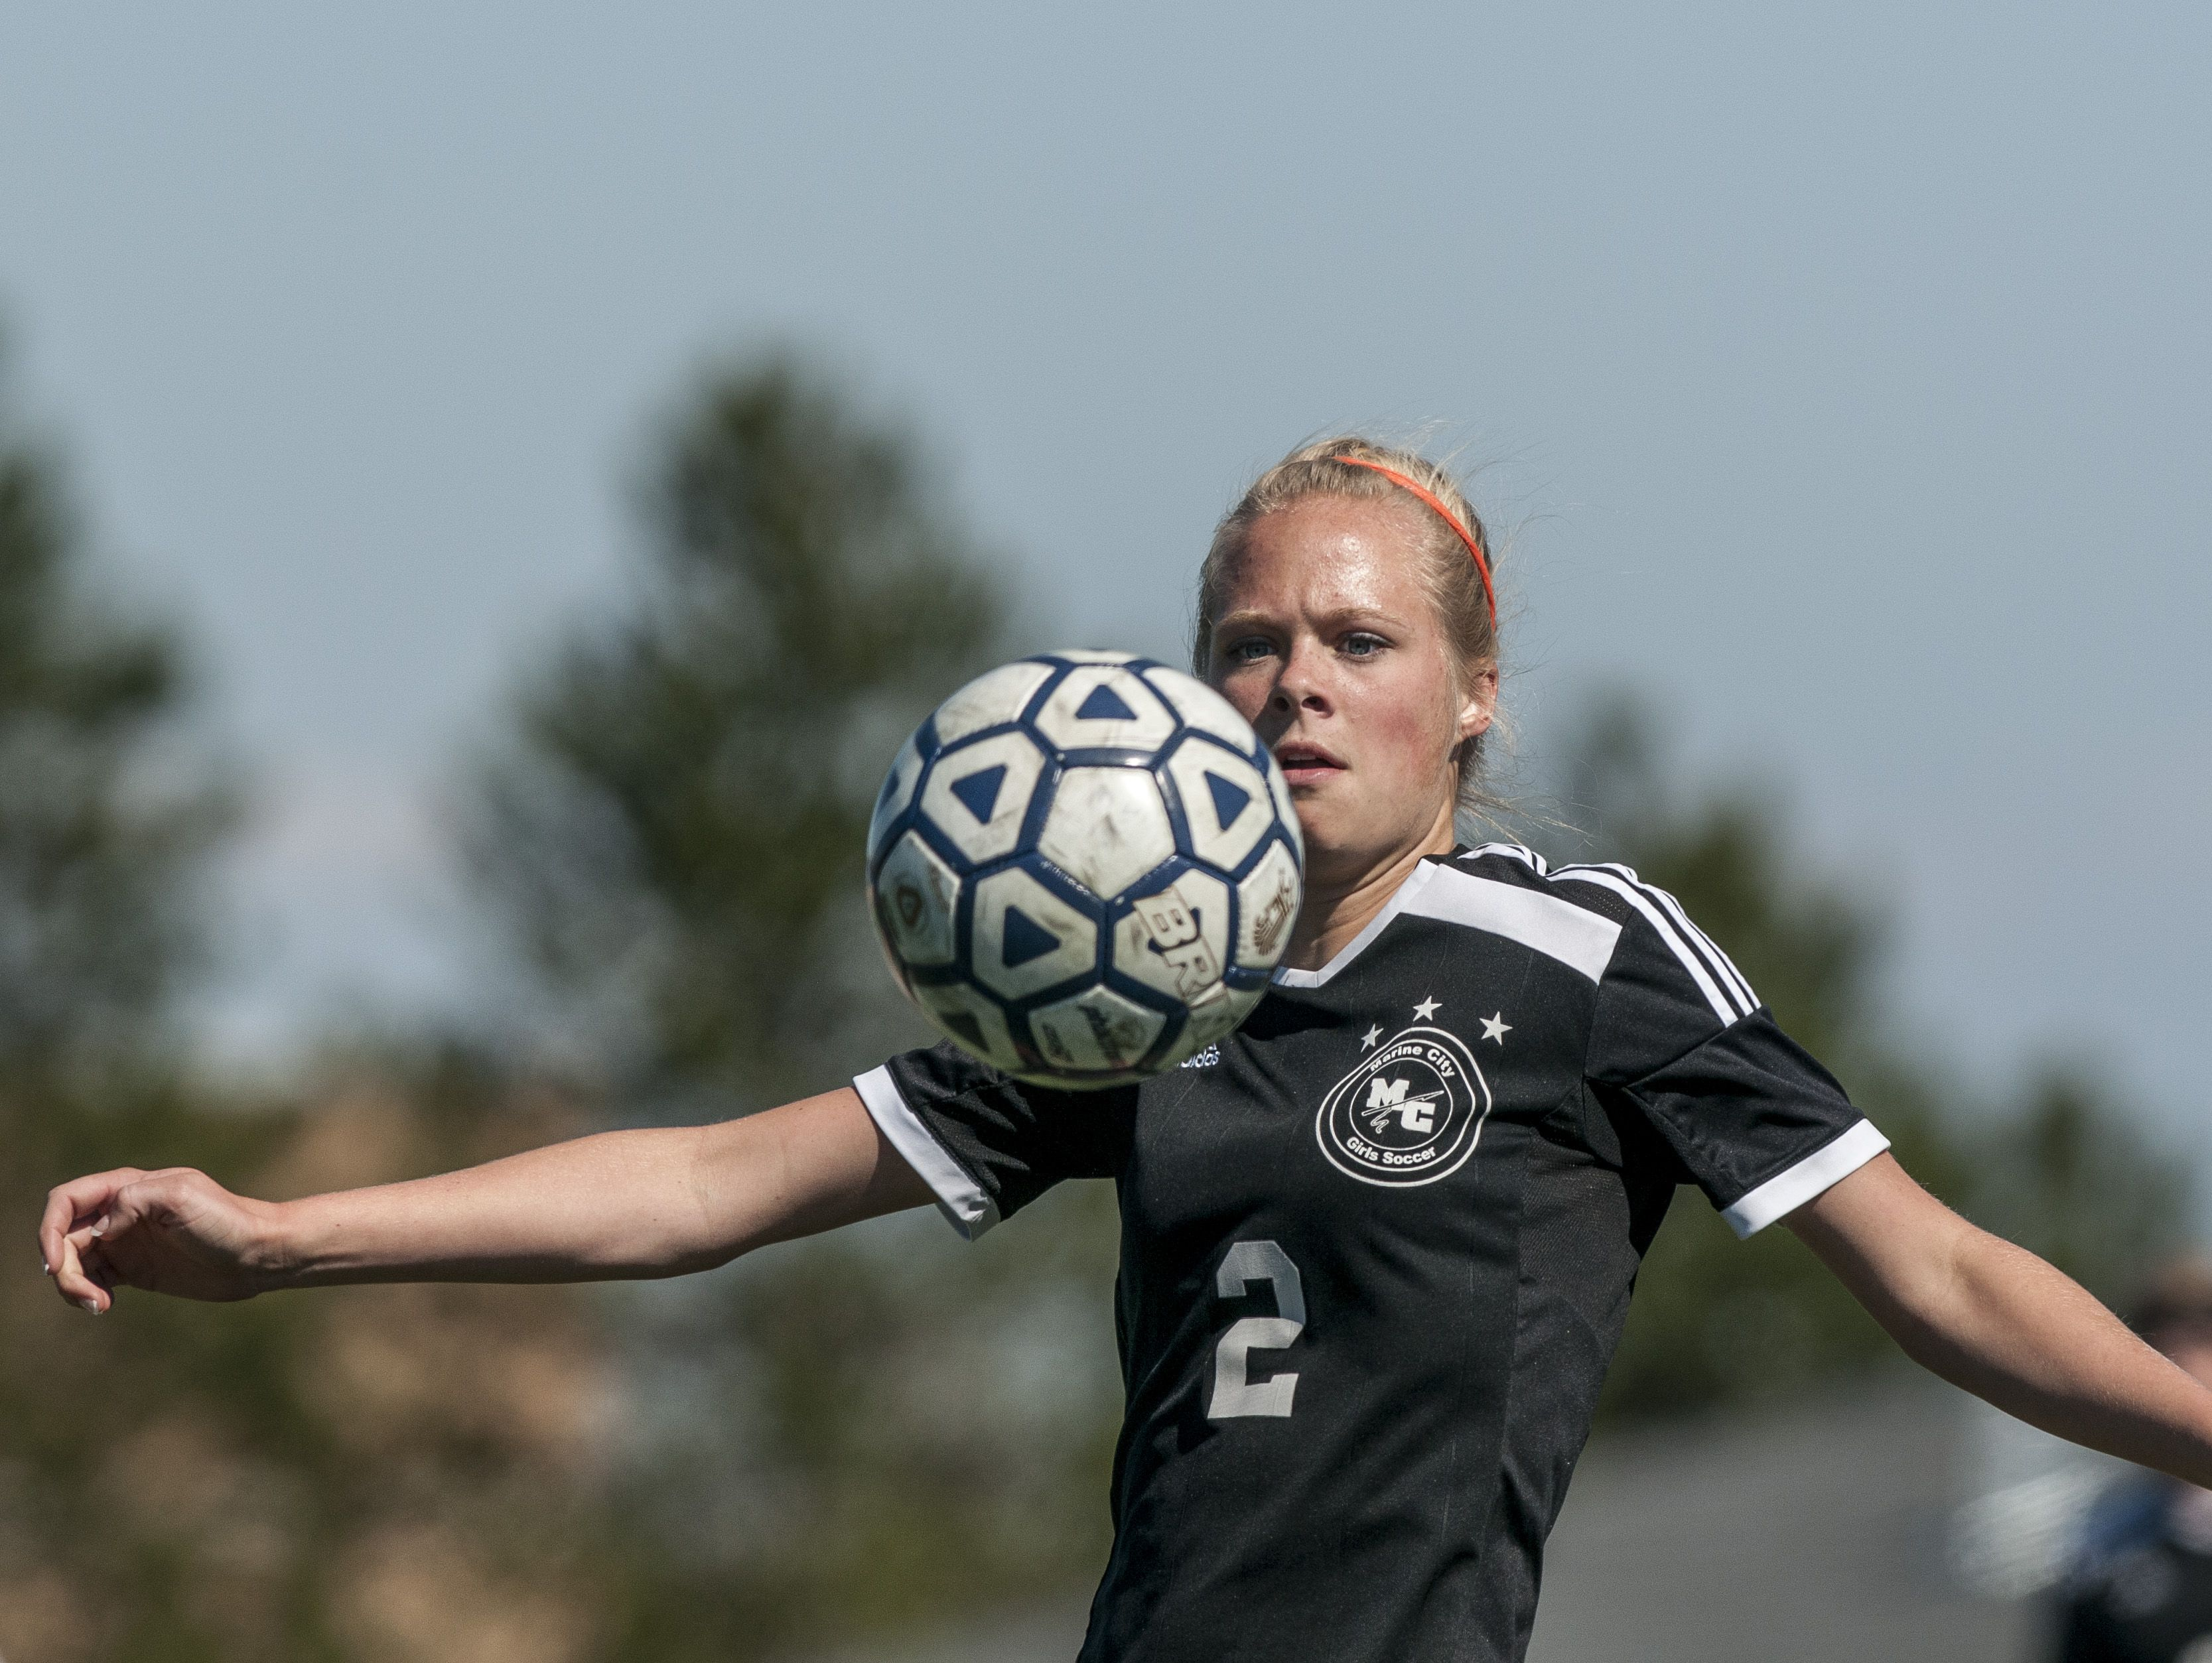 Marine City senior Bailee Gunderson controls the ball during a soccer game Wednesday, May 18, 2016 at Marysville High School.